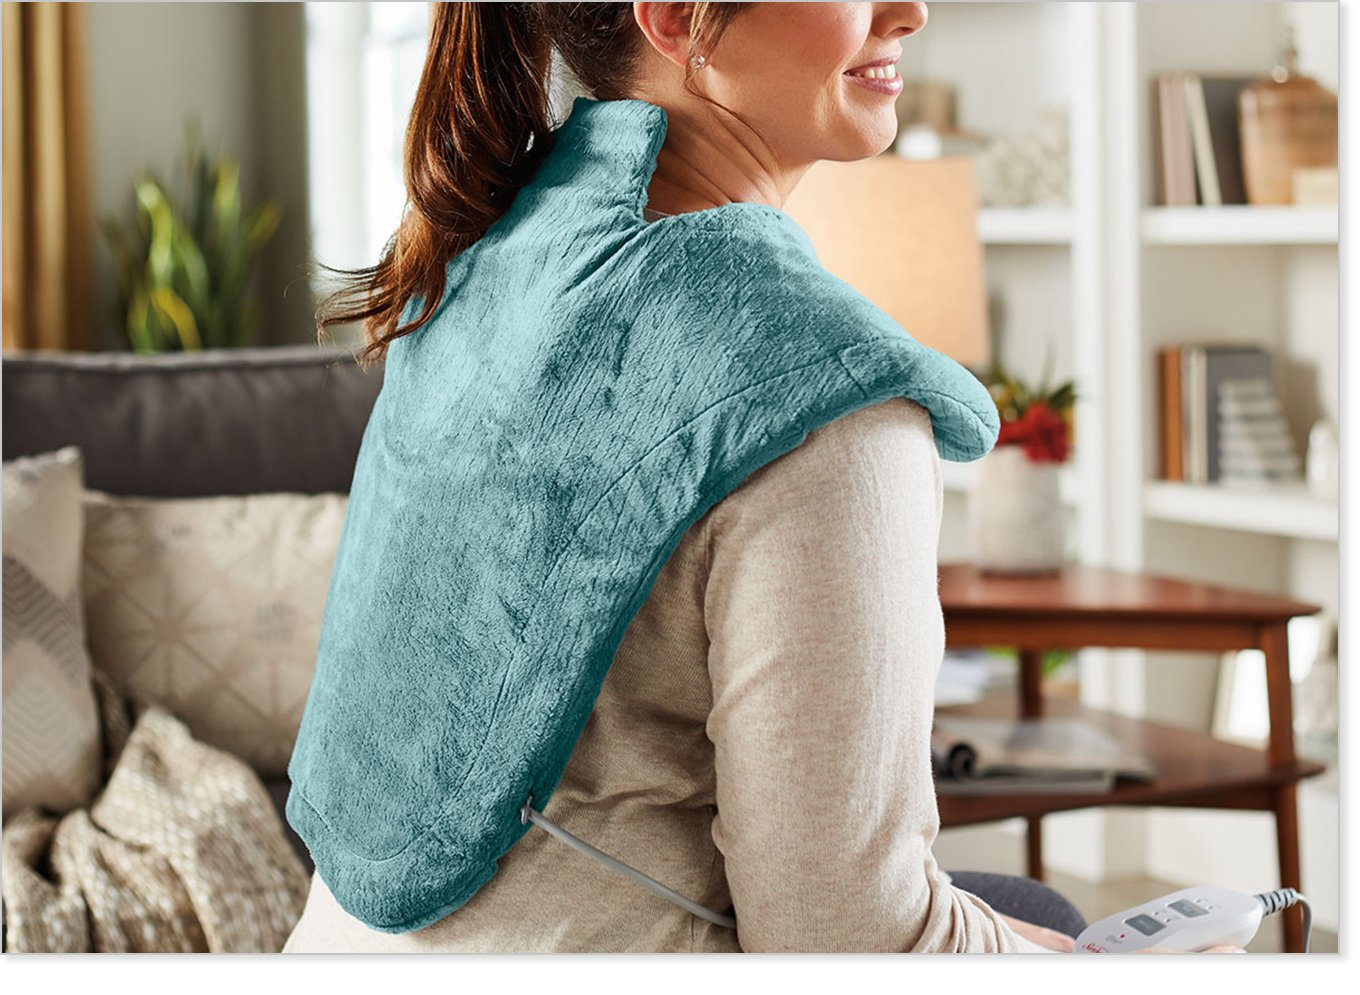 Sunbeam Massaging Renue Heat Therapy Neck and Shoulder Wrap